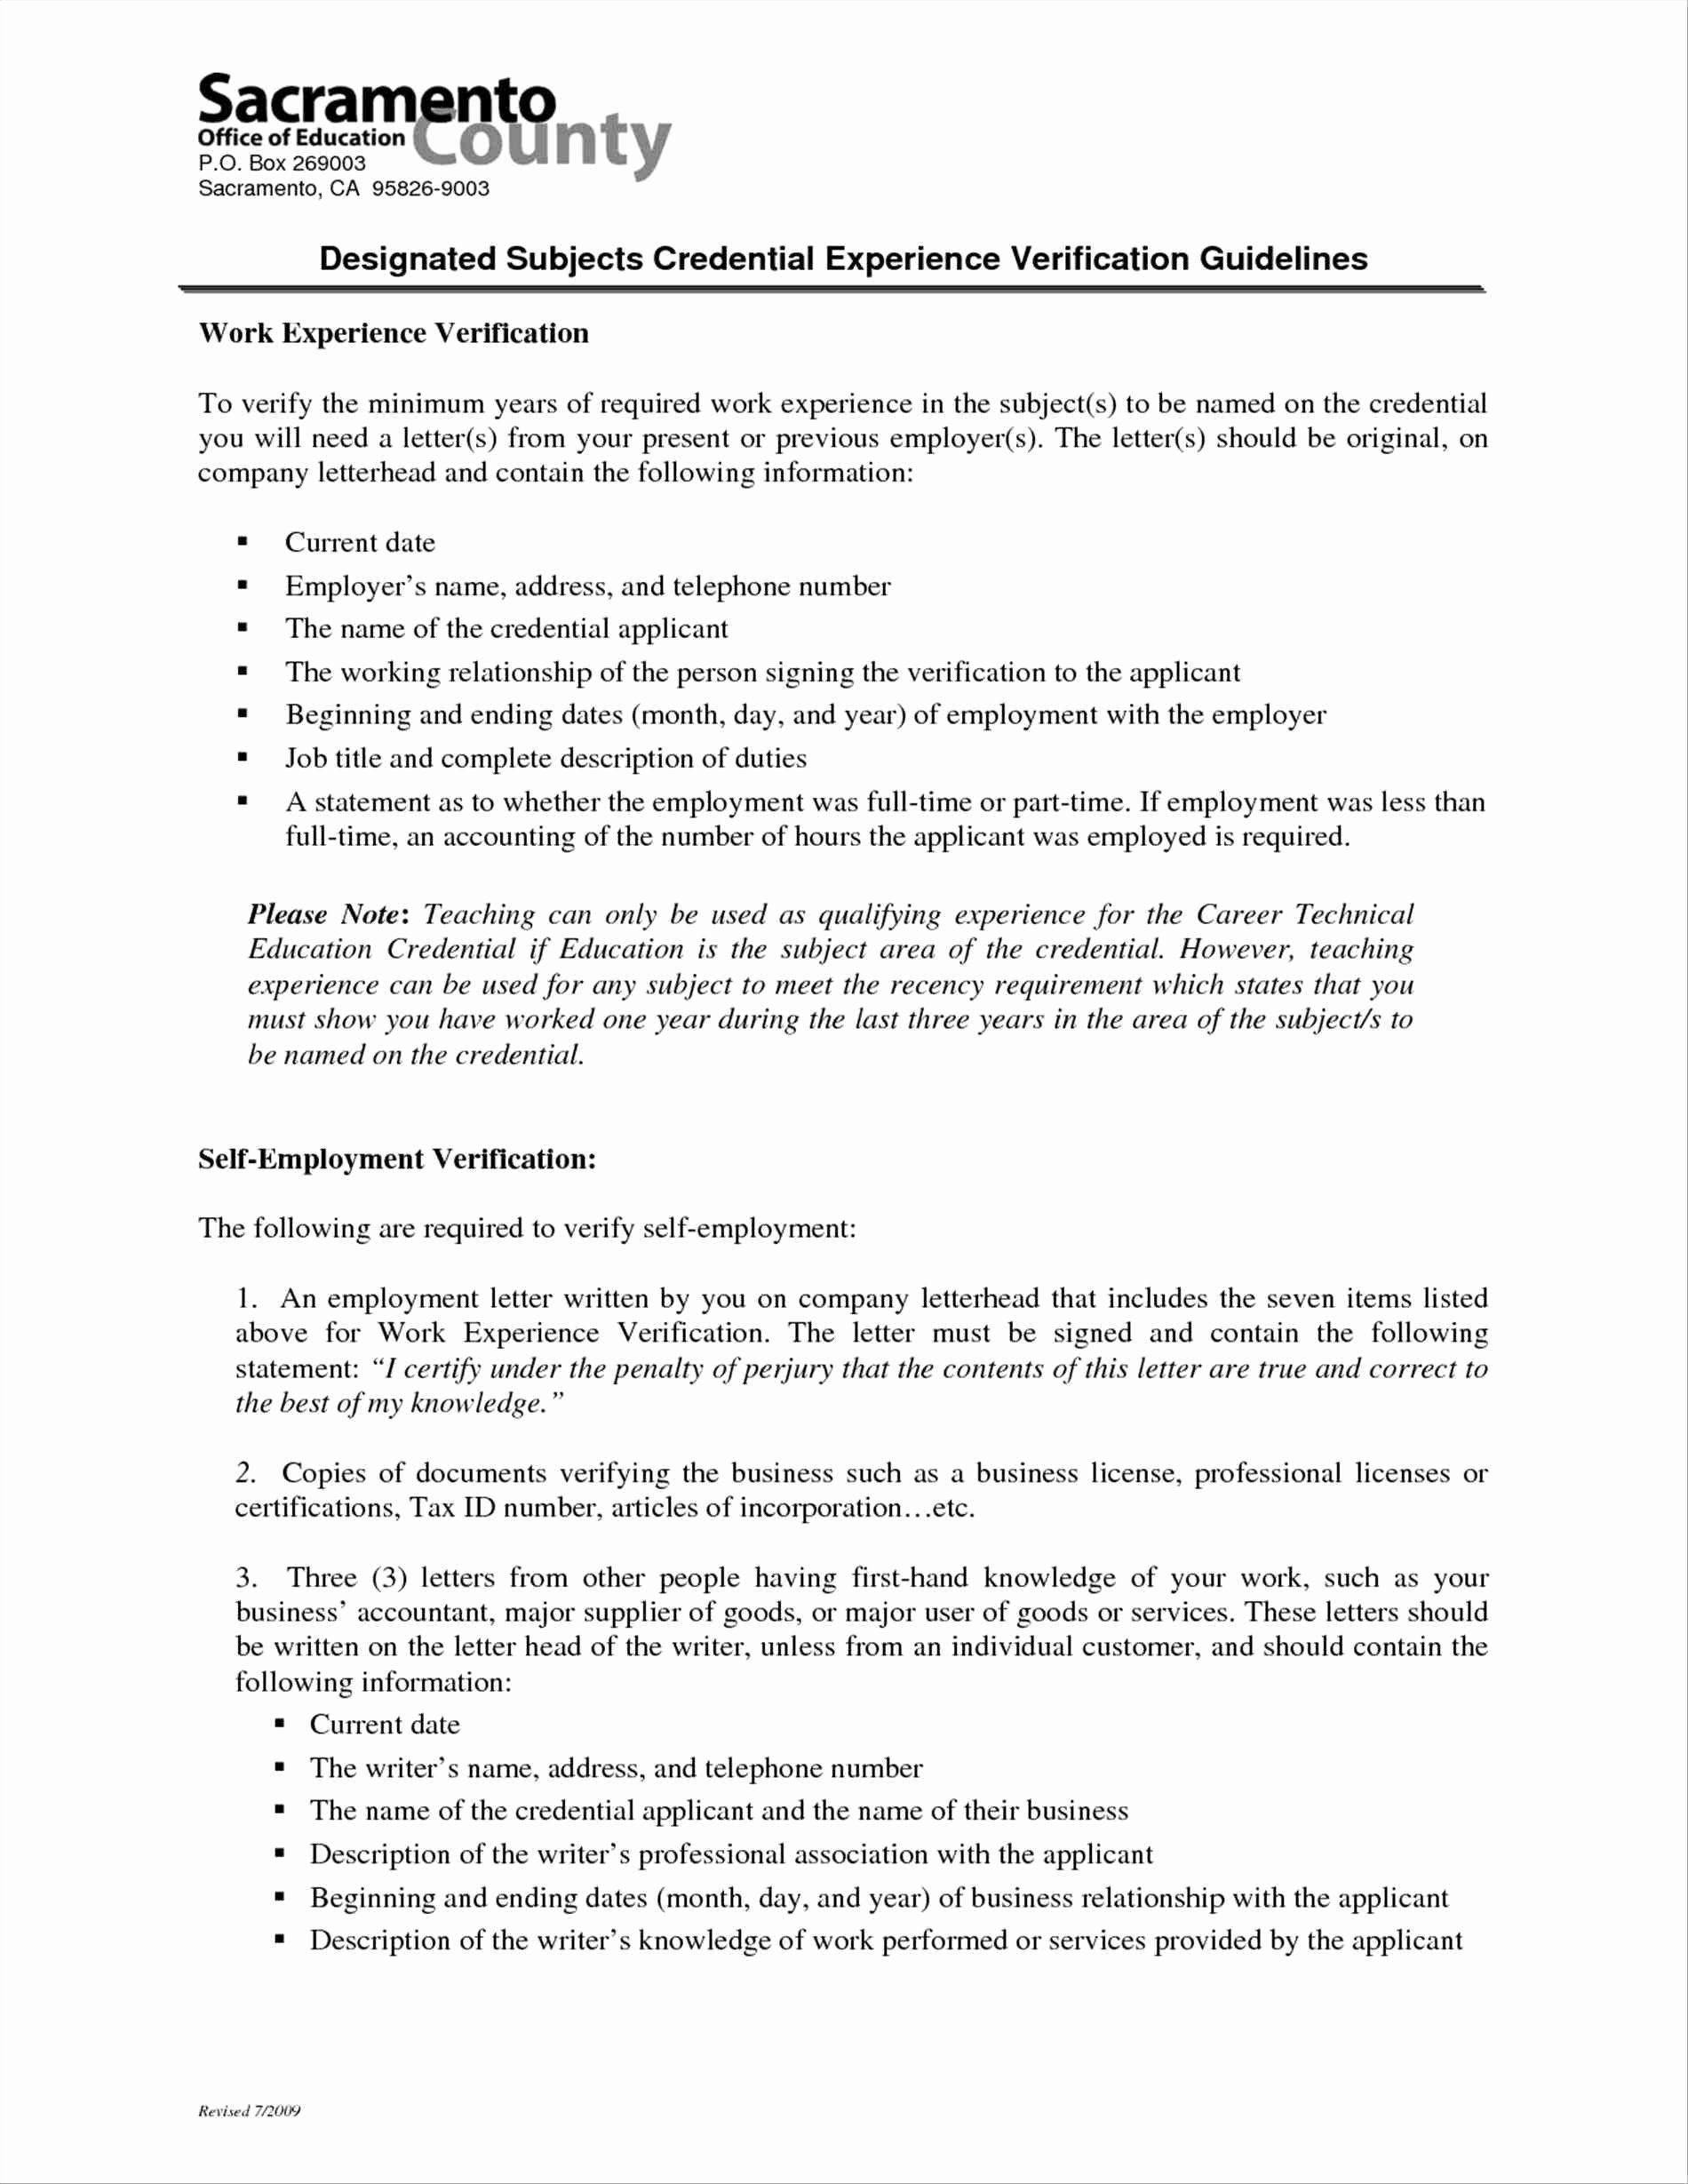 Self Employment Letter Template Awesome Cpa Letter for Self Employed Template Collection